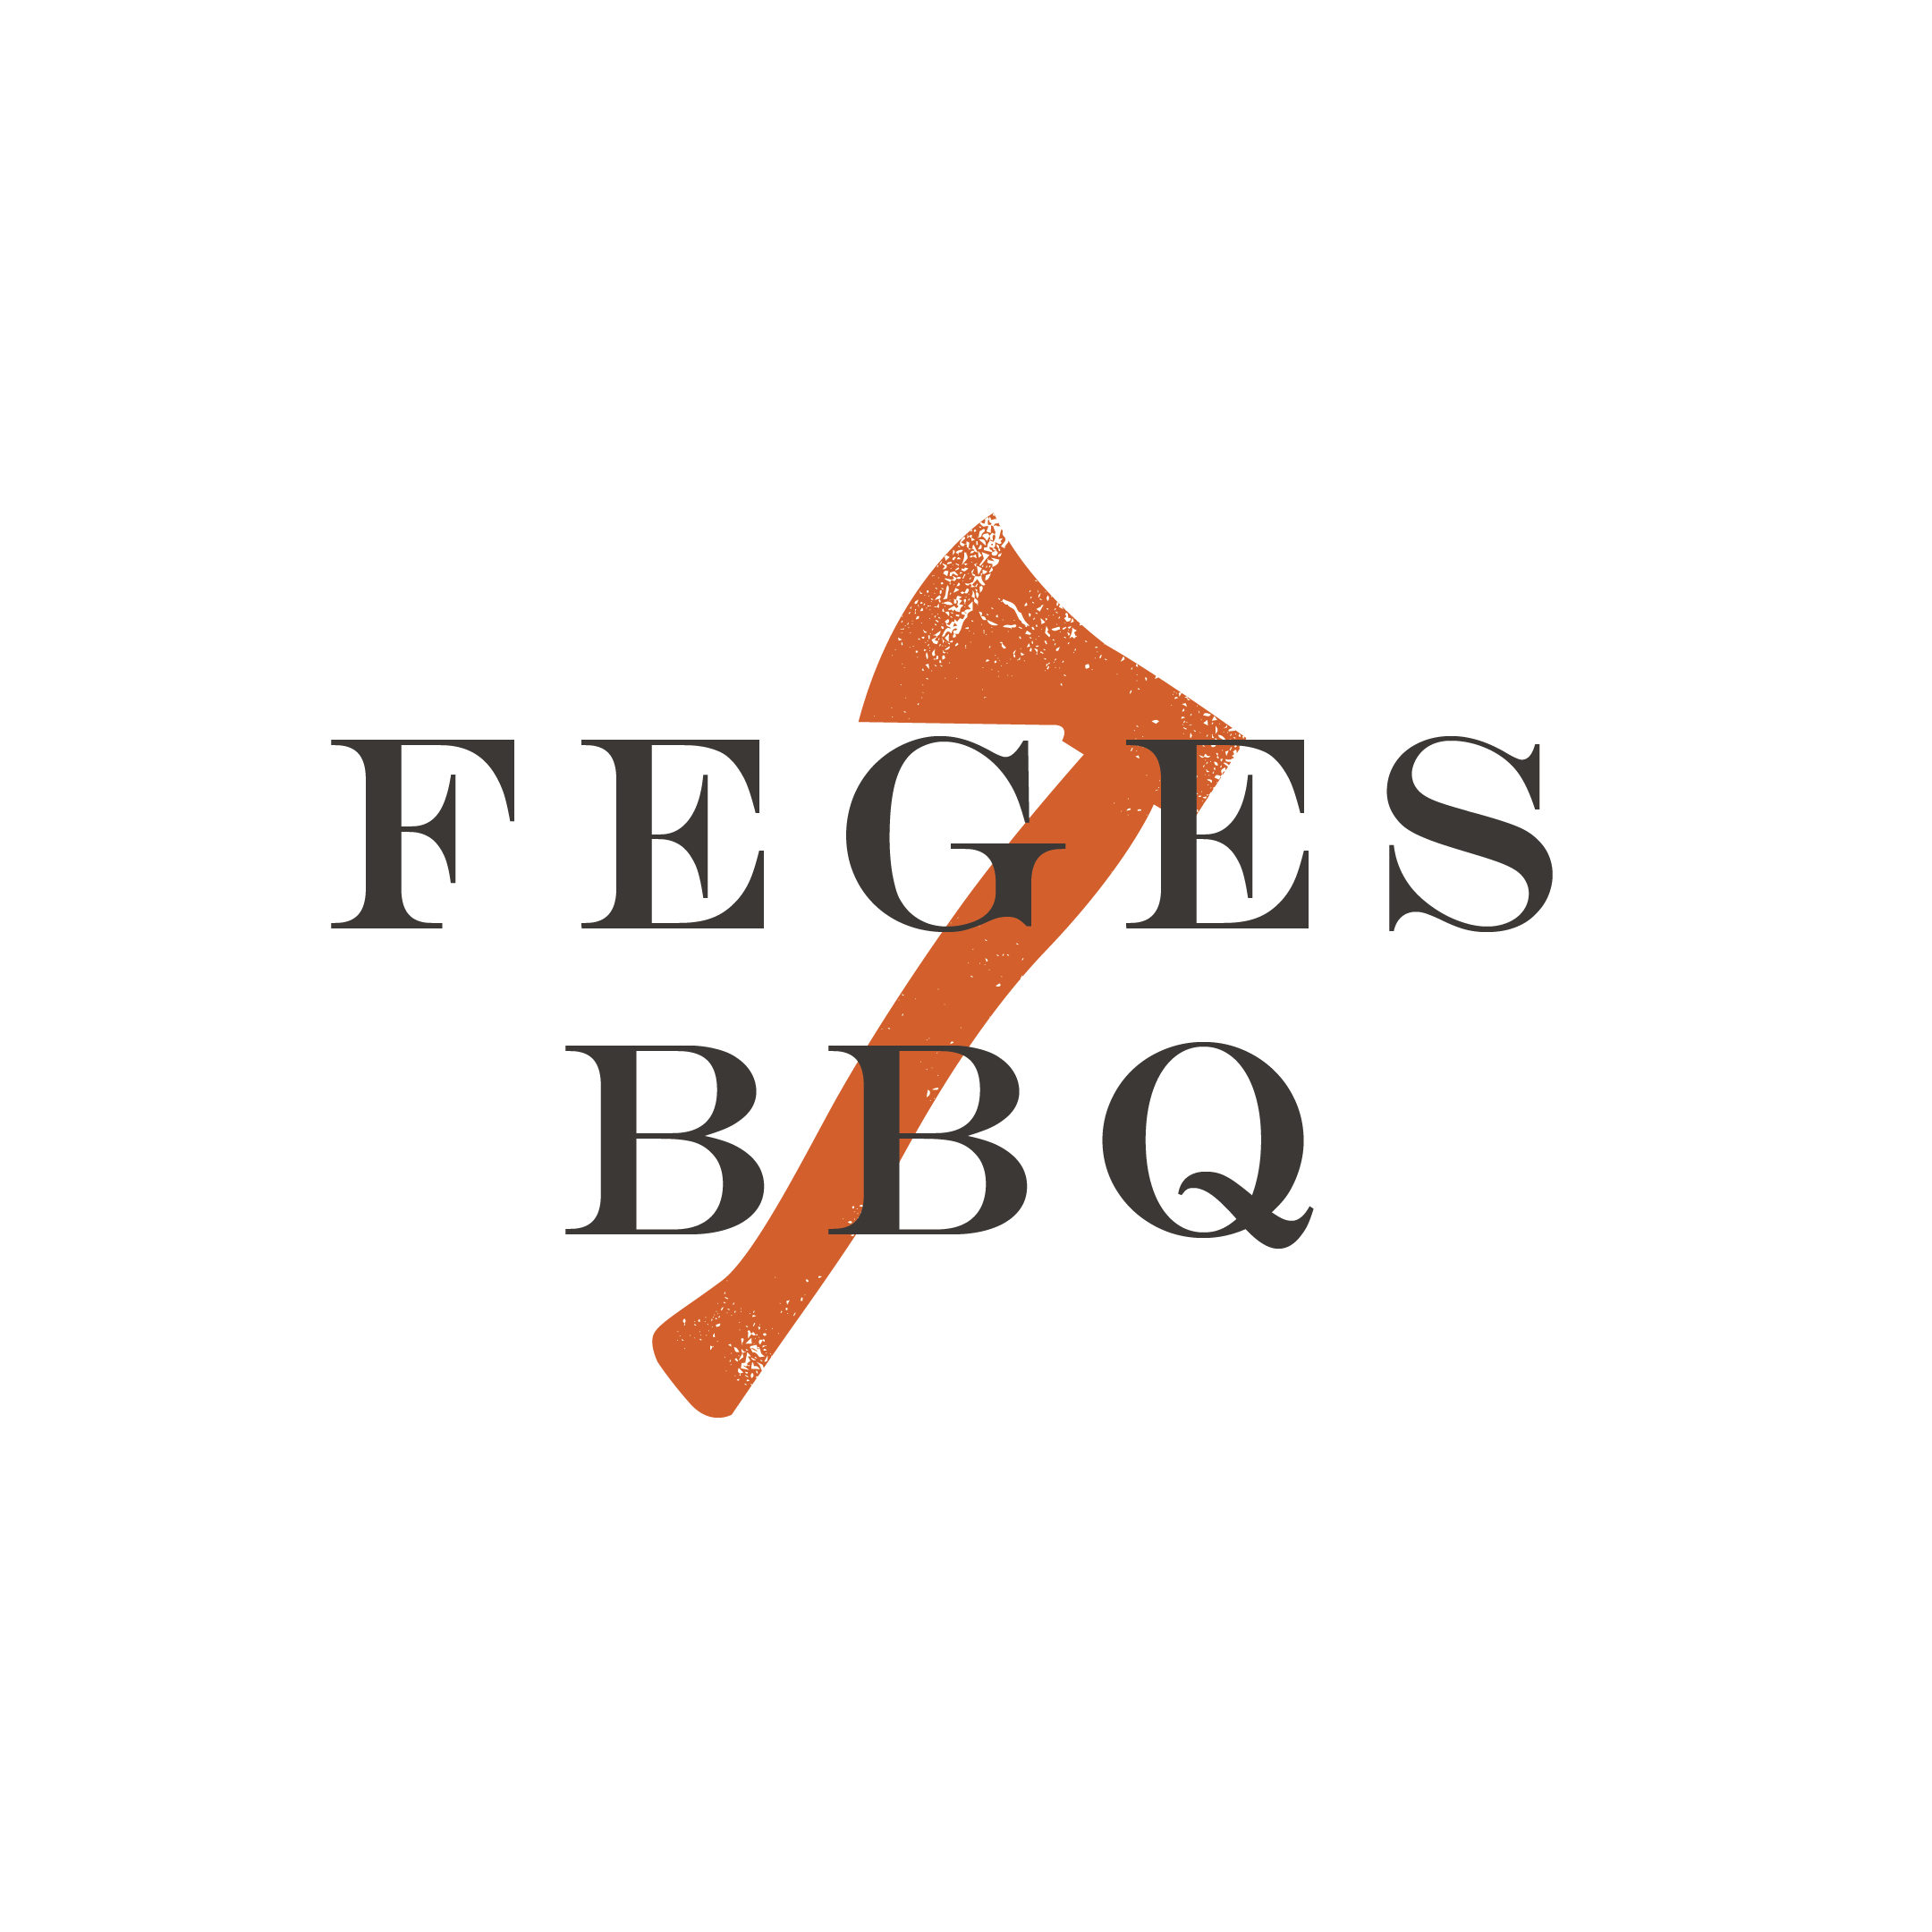 Erin Smith - Feges_Full_Logo_twocolor1@2x.png